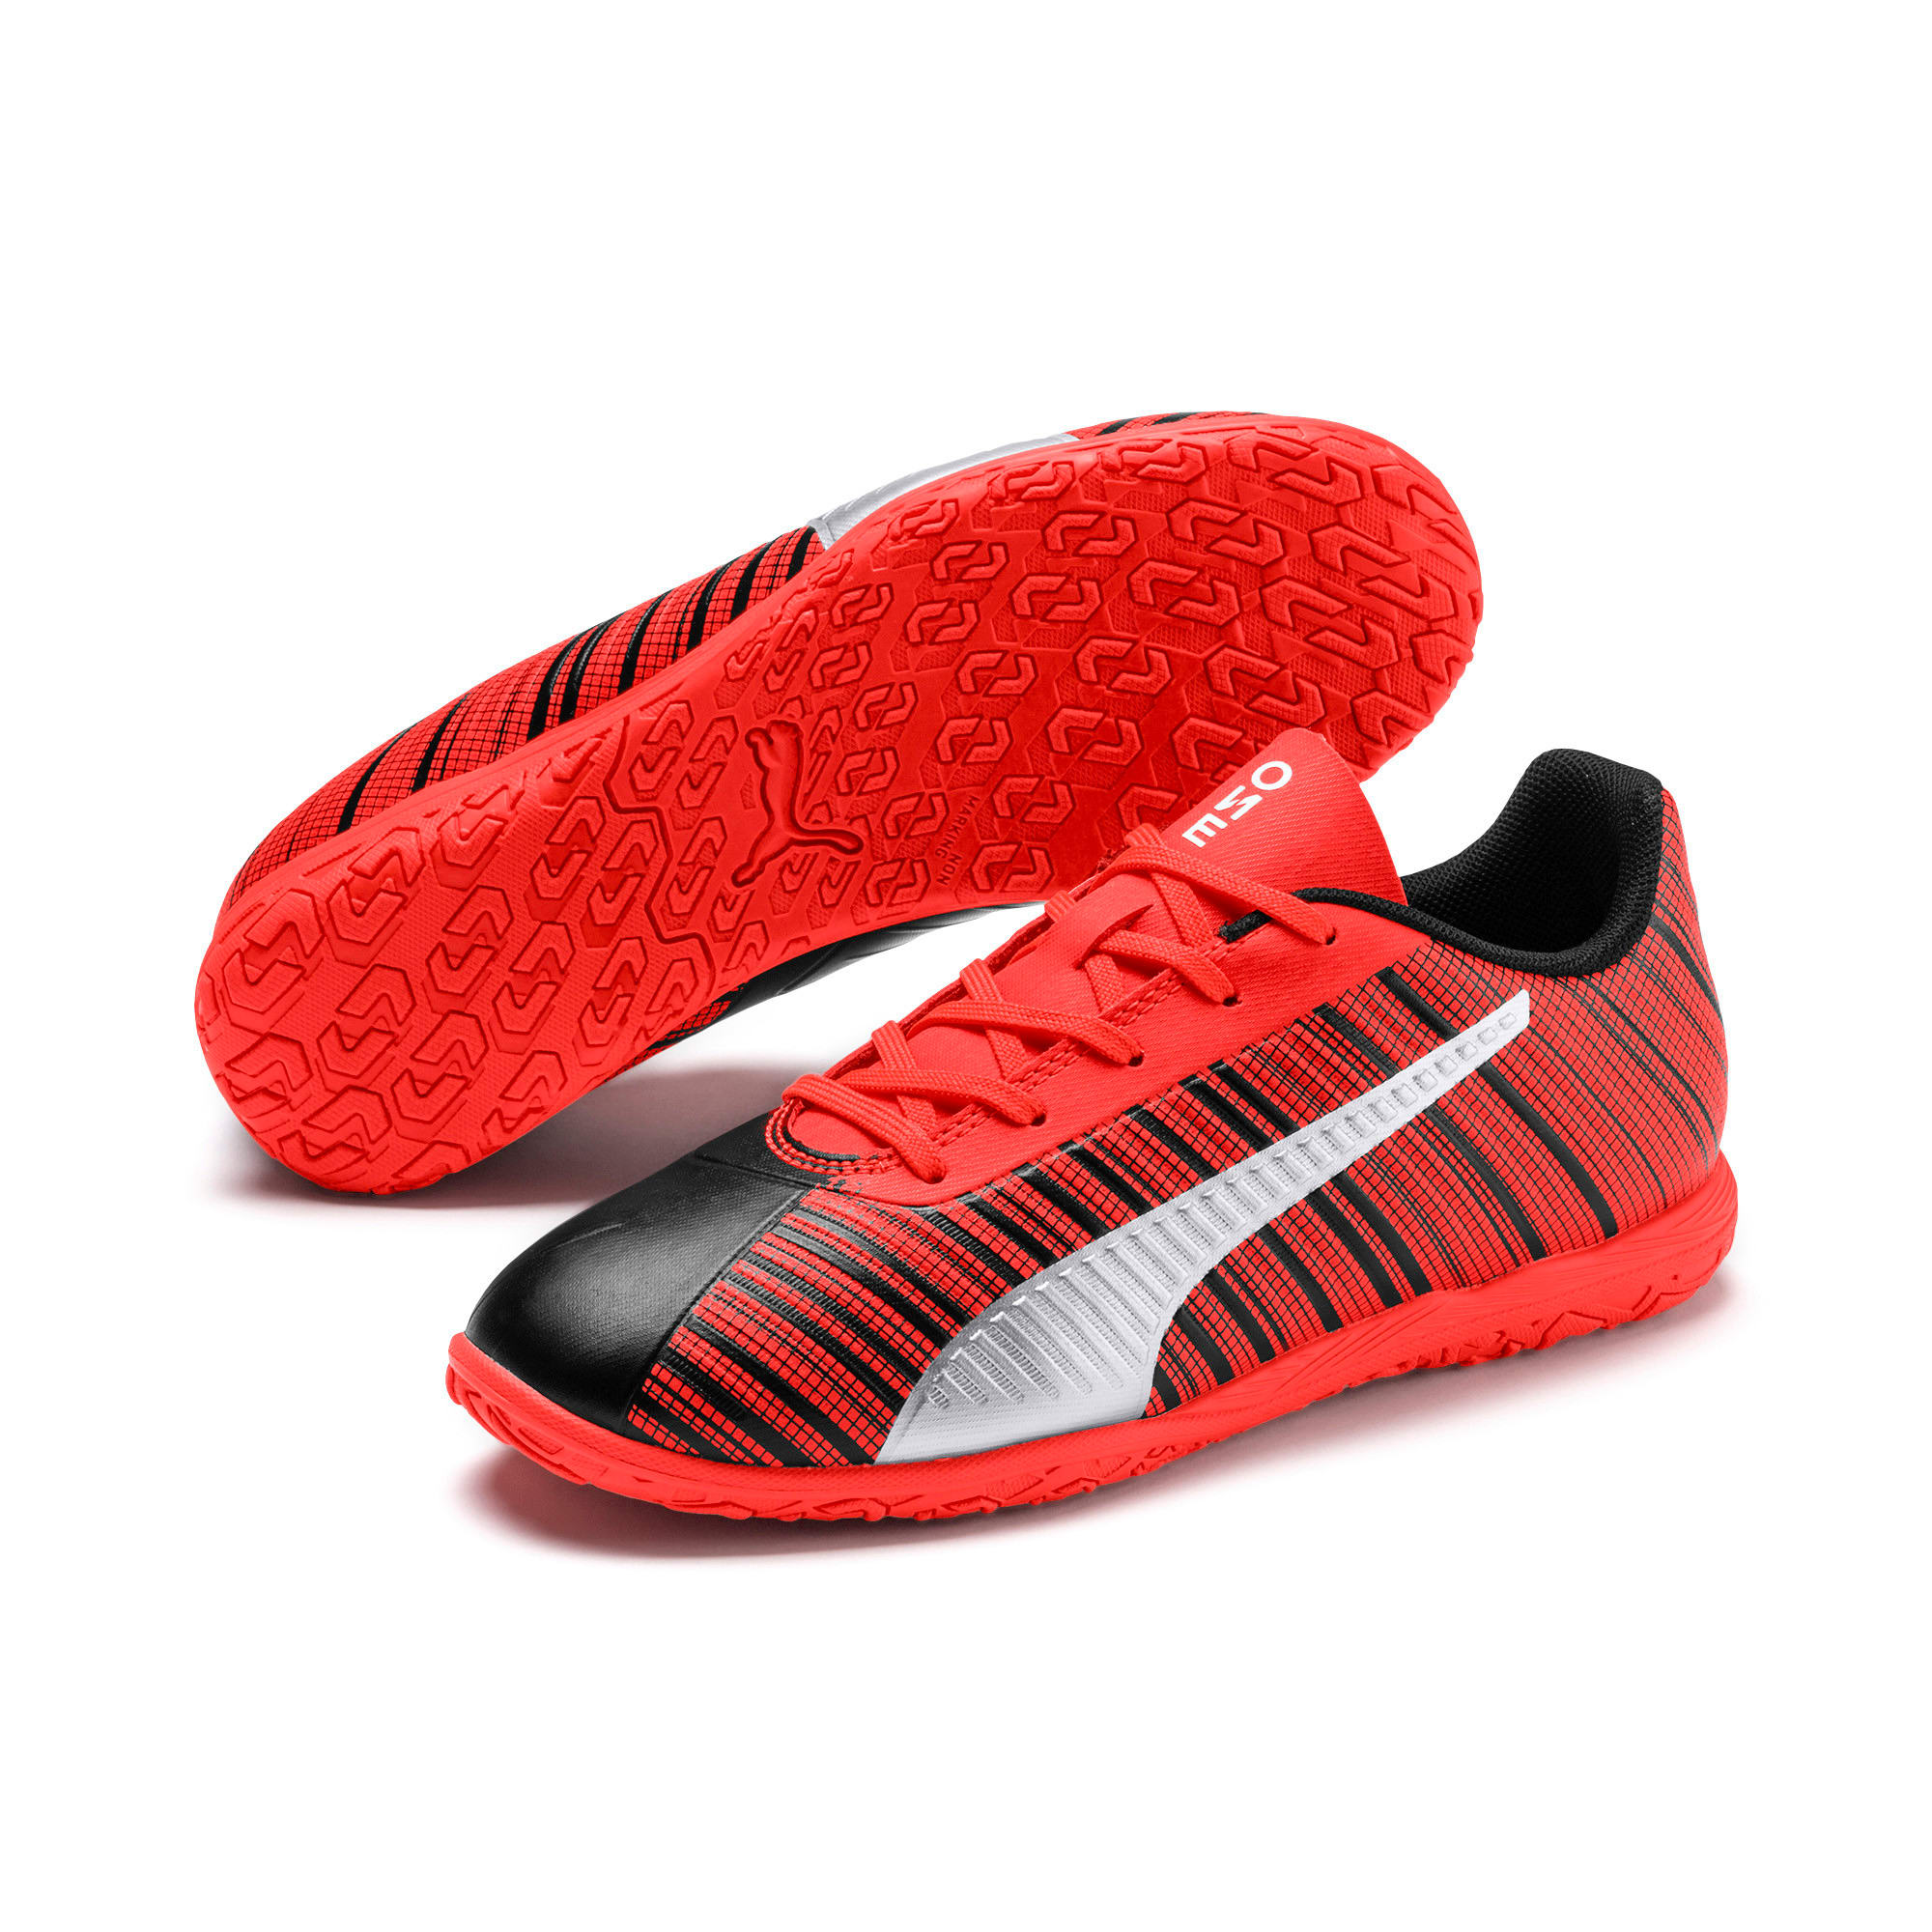 Thumbnail 2 of PUMA ONE 5.4 IT Youth Football Boots, Black-Nrgy Red-Aged Silver, medium